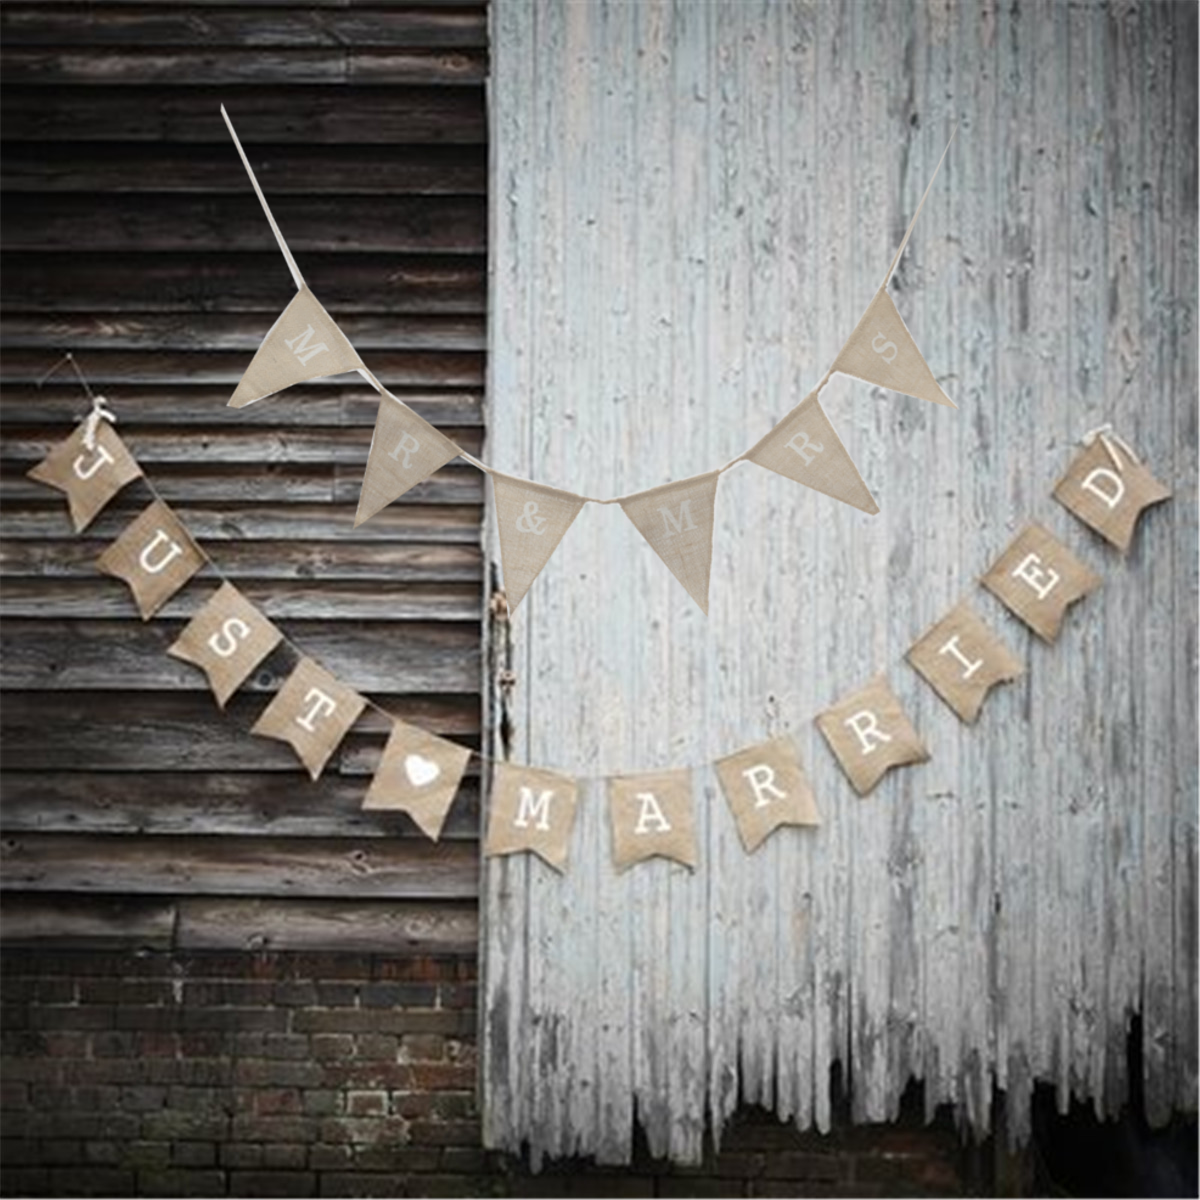 JUST MARRIED MR& MRS Hessian Burlap Fabric Rustic Wedding Banner Bunting Vintage Decoration